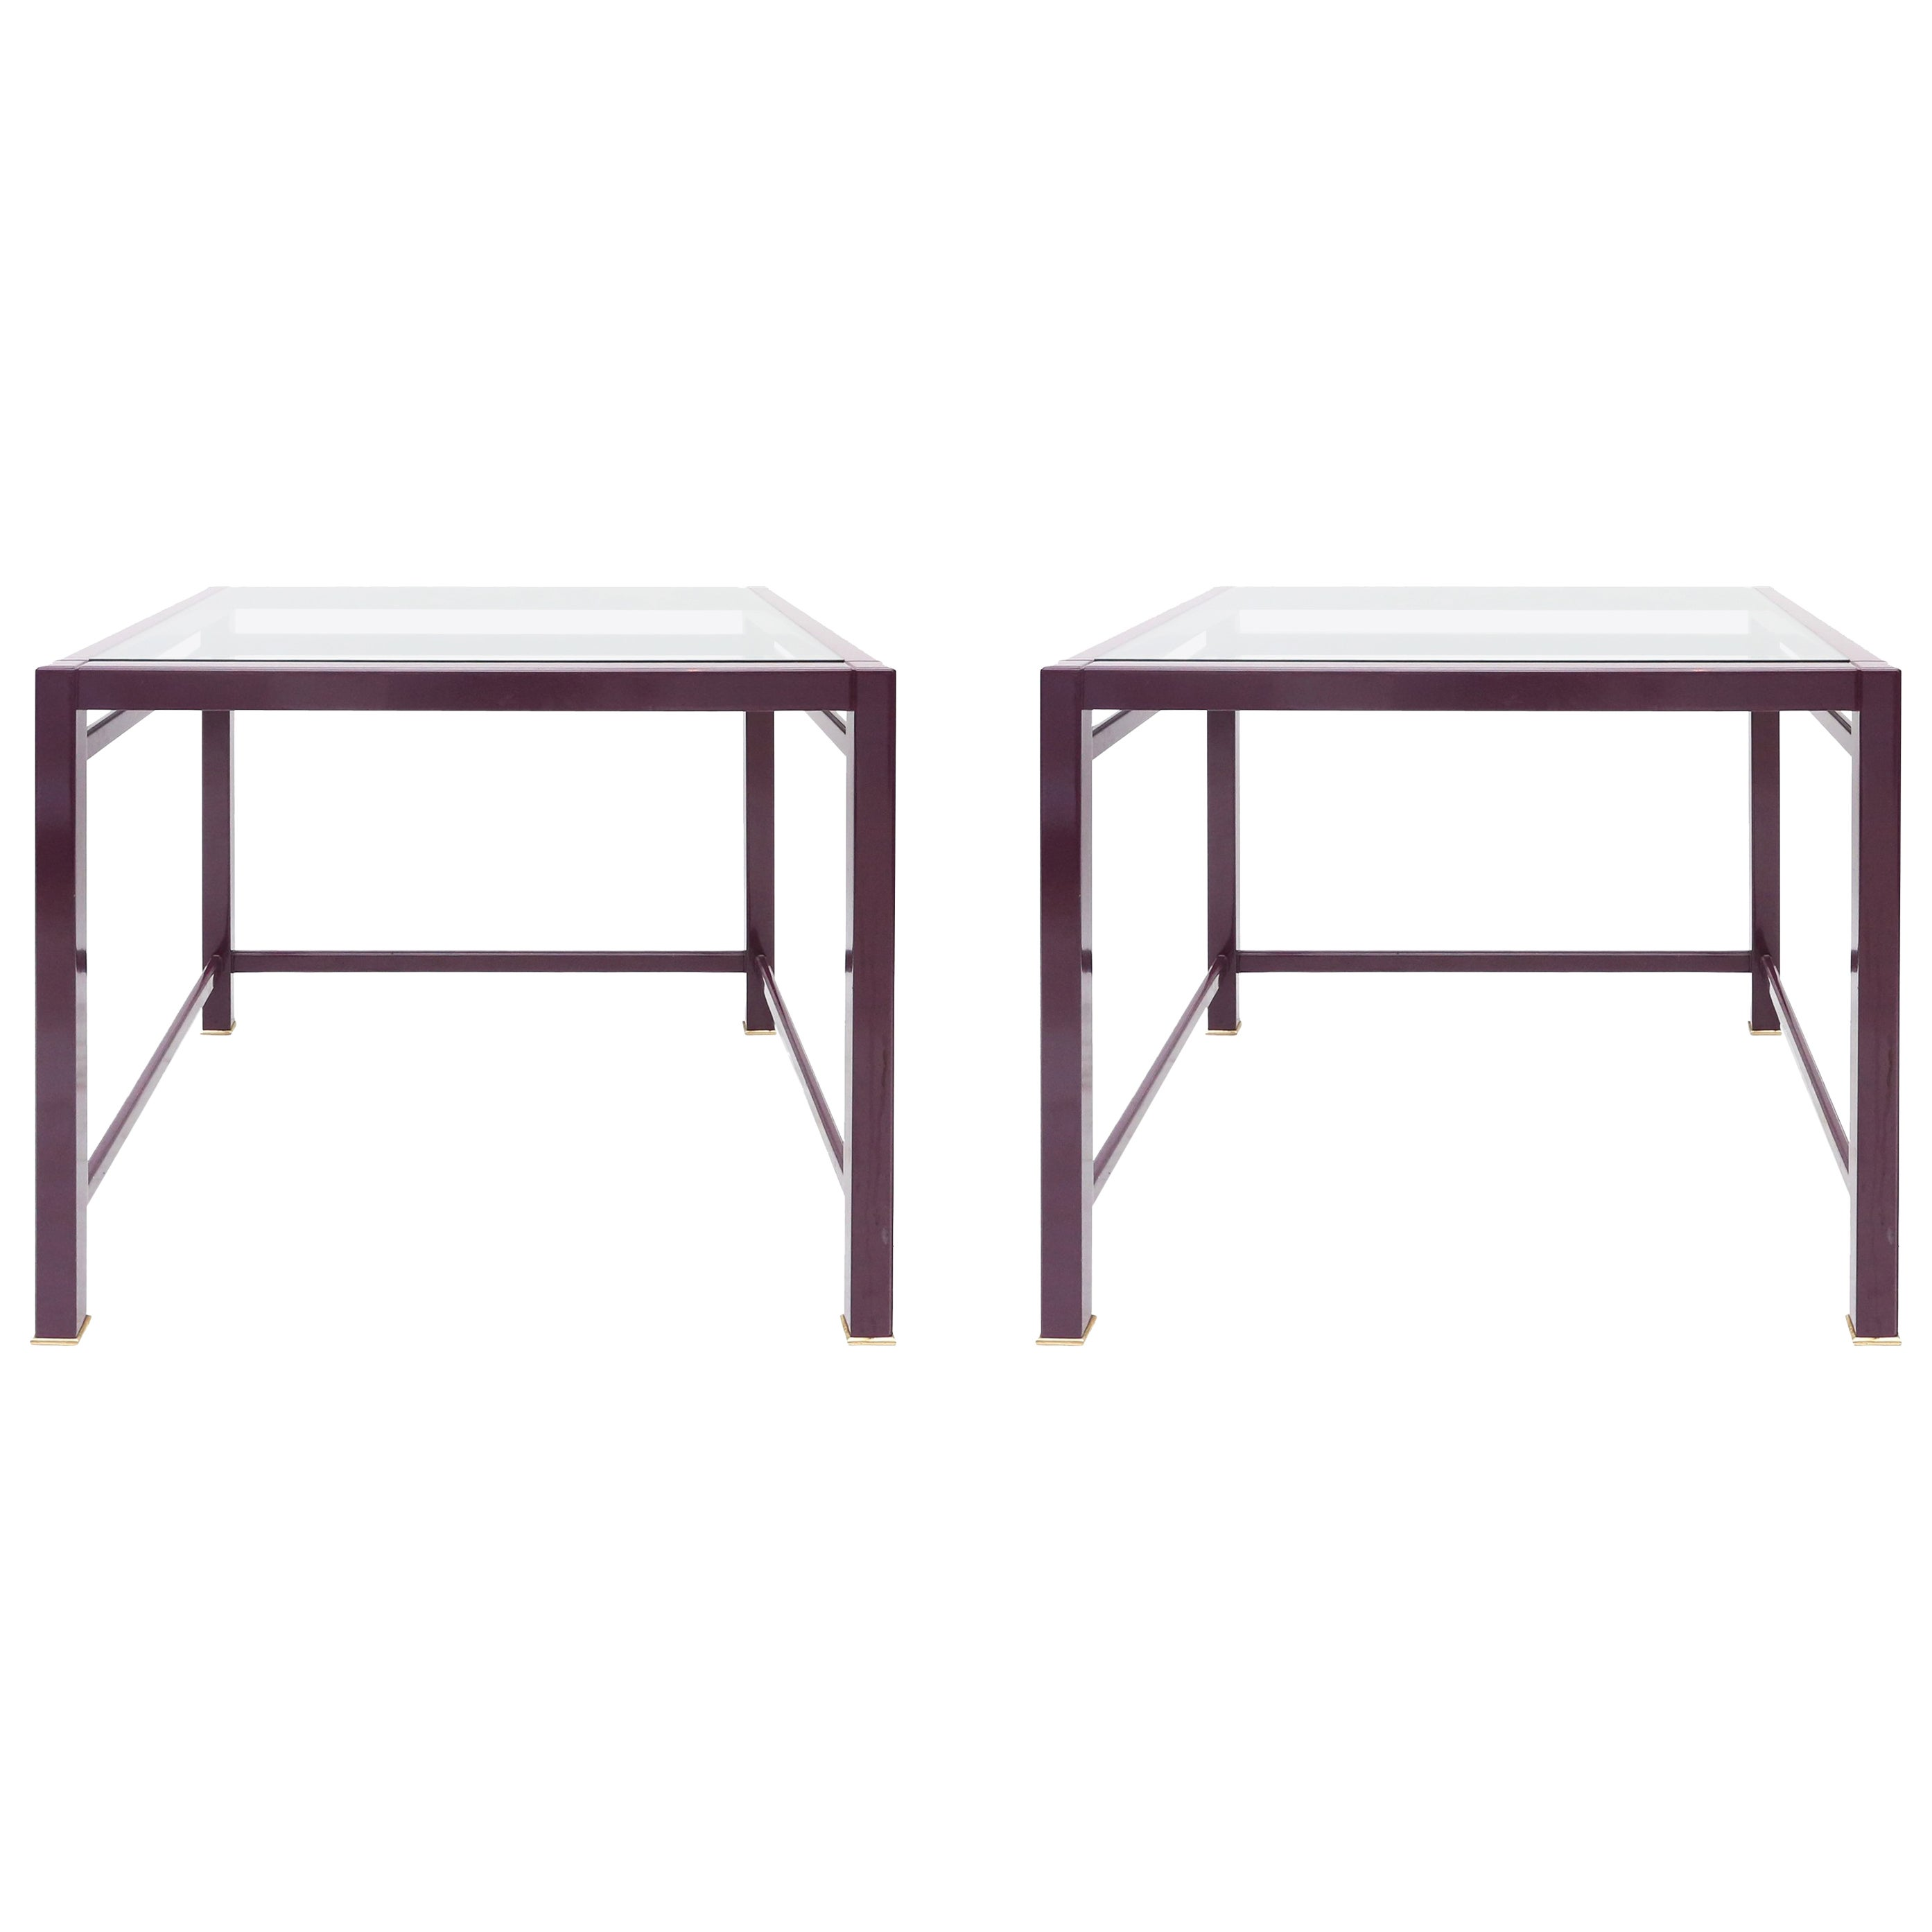 Purple and brass post-modern pair of side tables